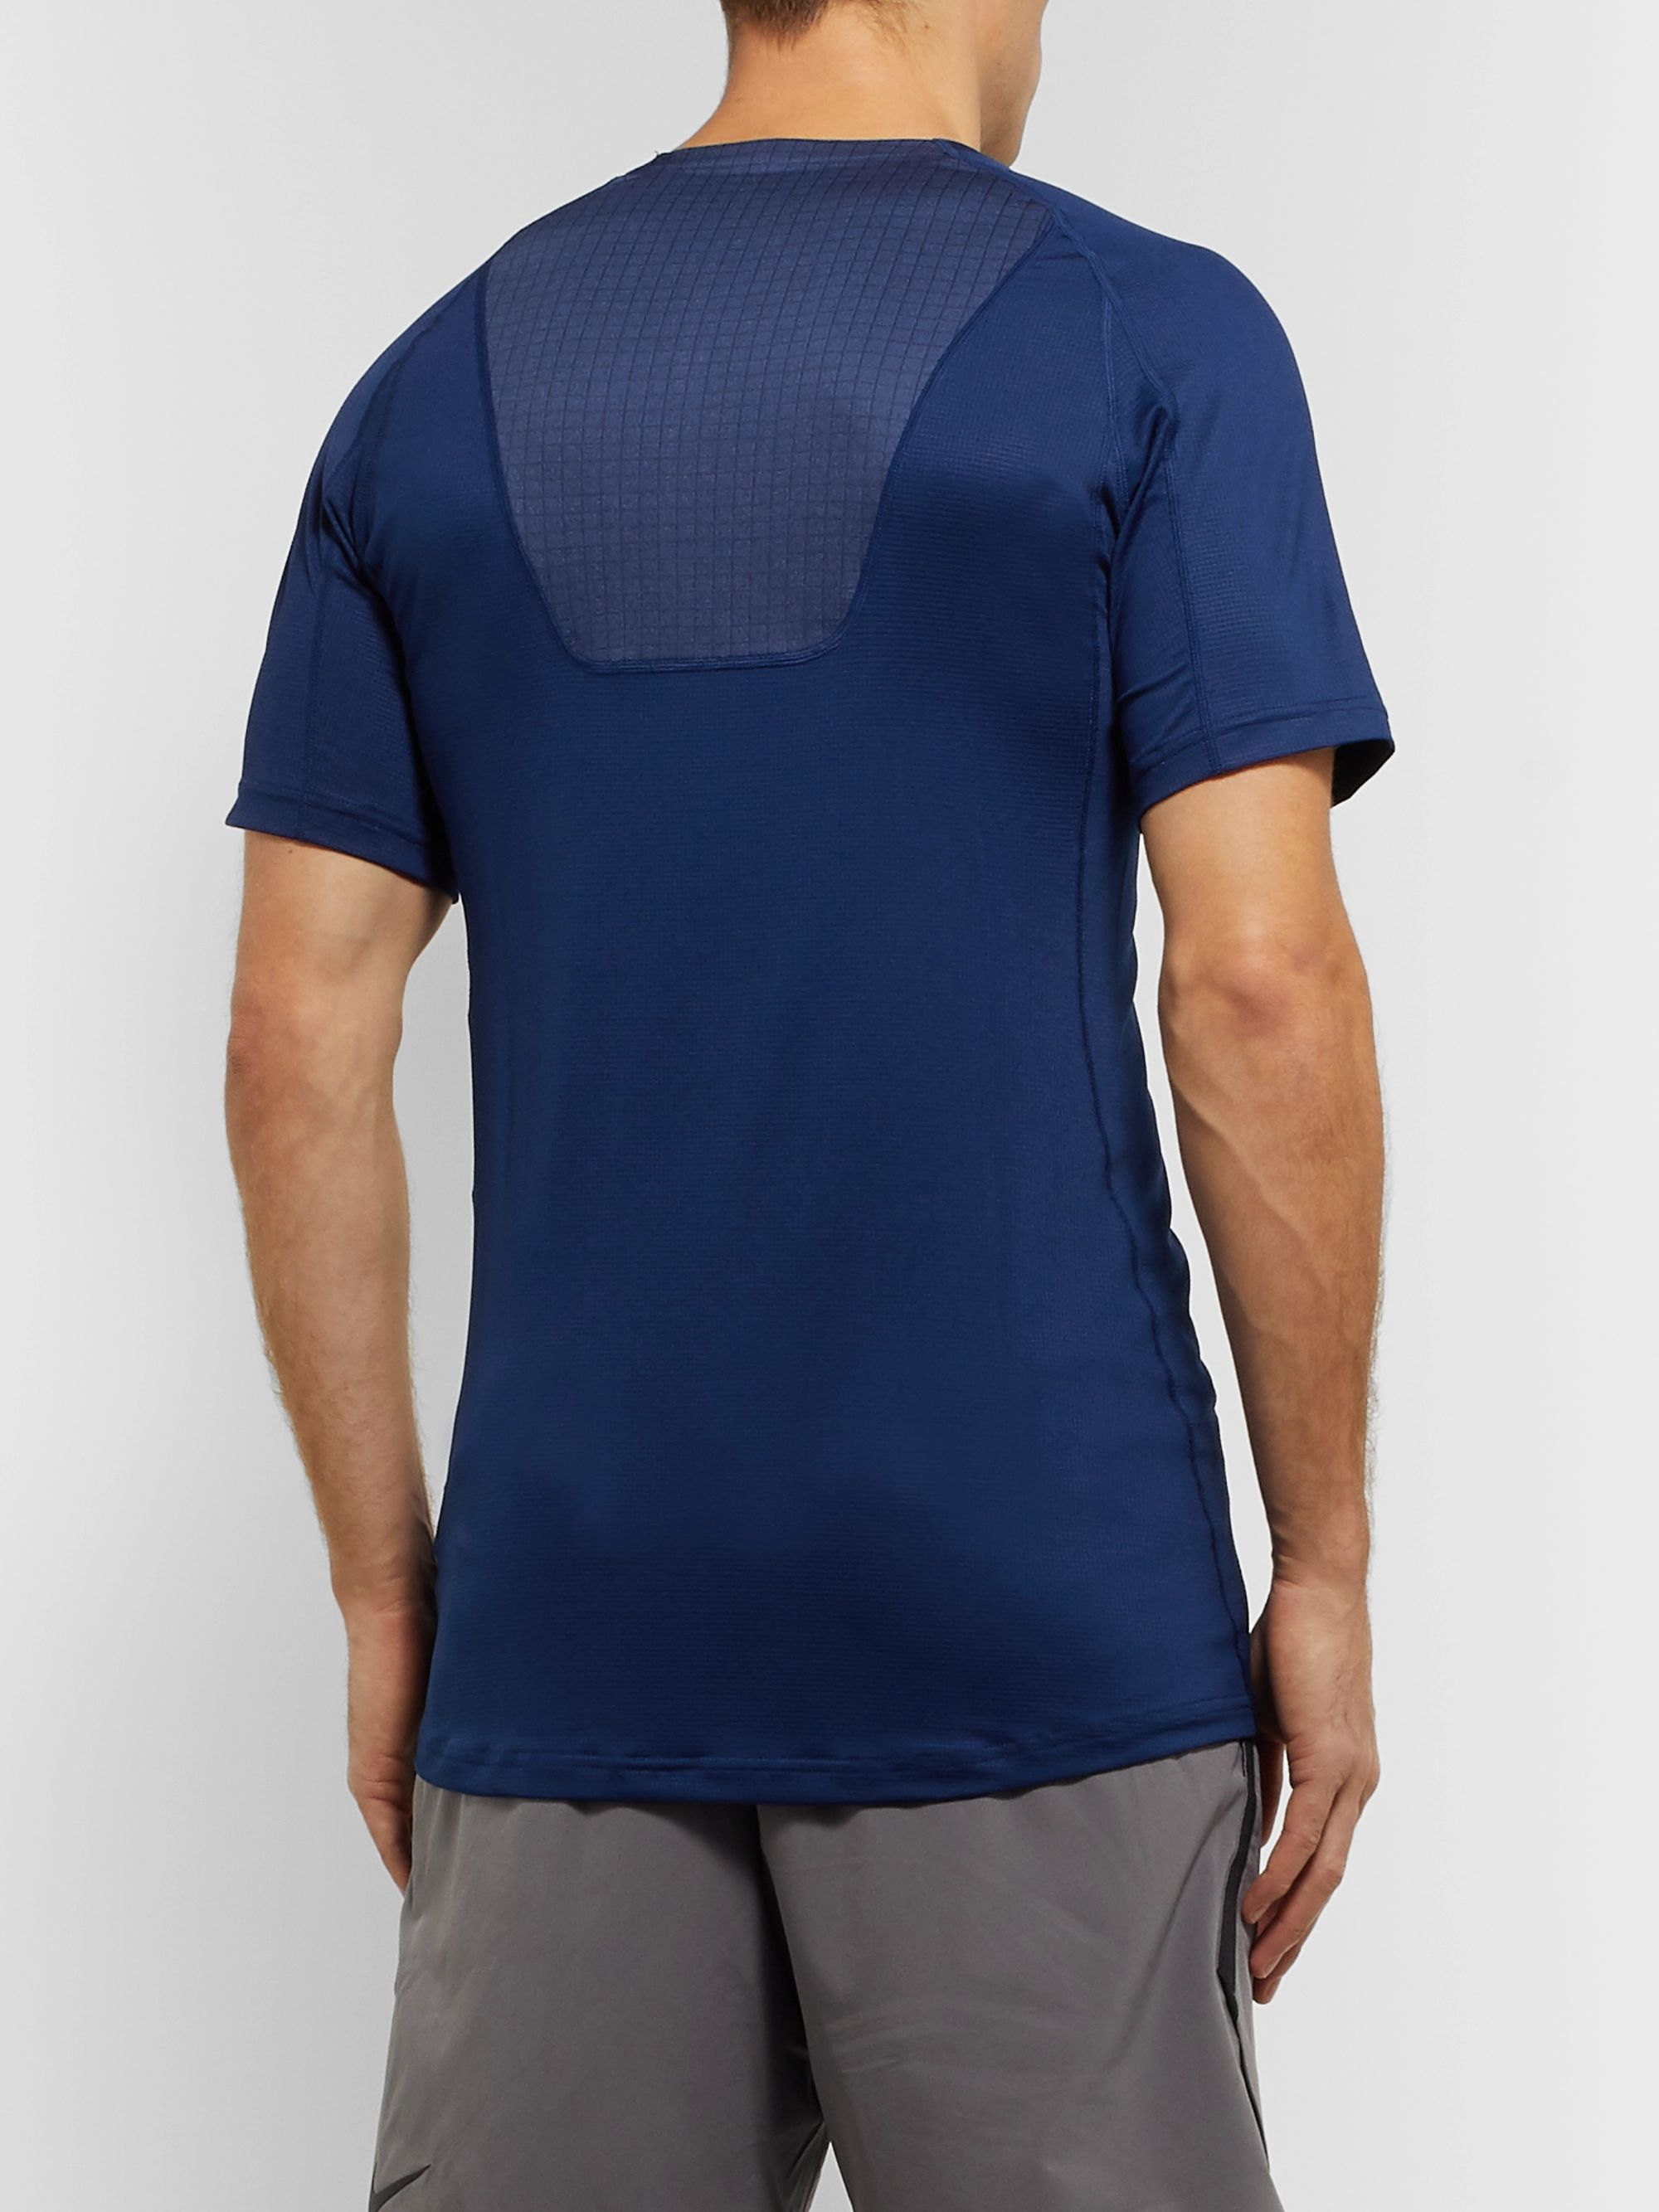 Nike Training Pro Slim-Fit Mesh-Panelled Dri-FIT Breathe T-Shirt